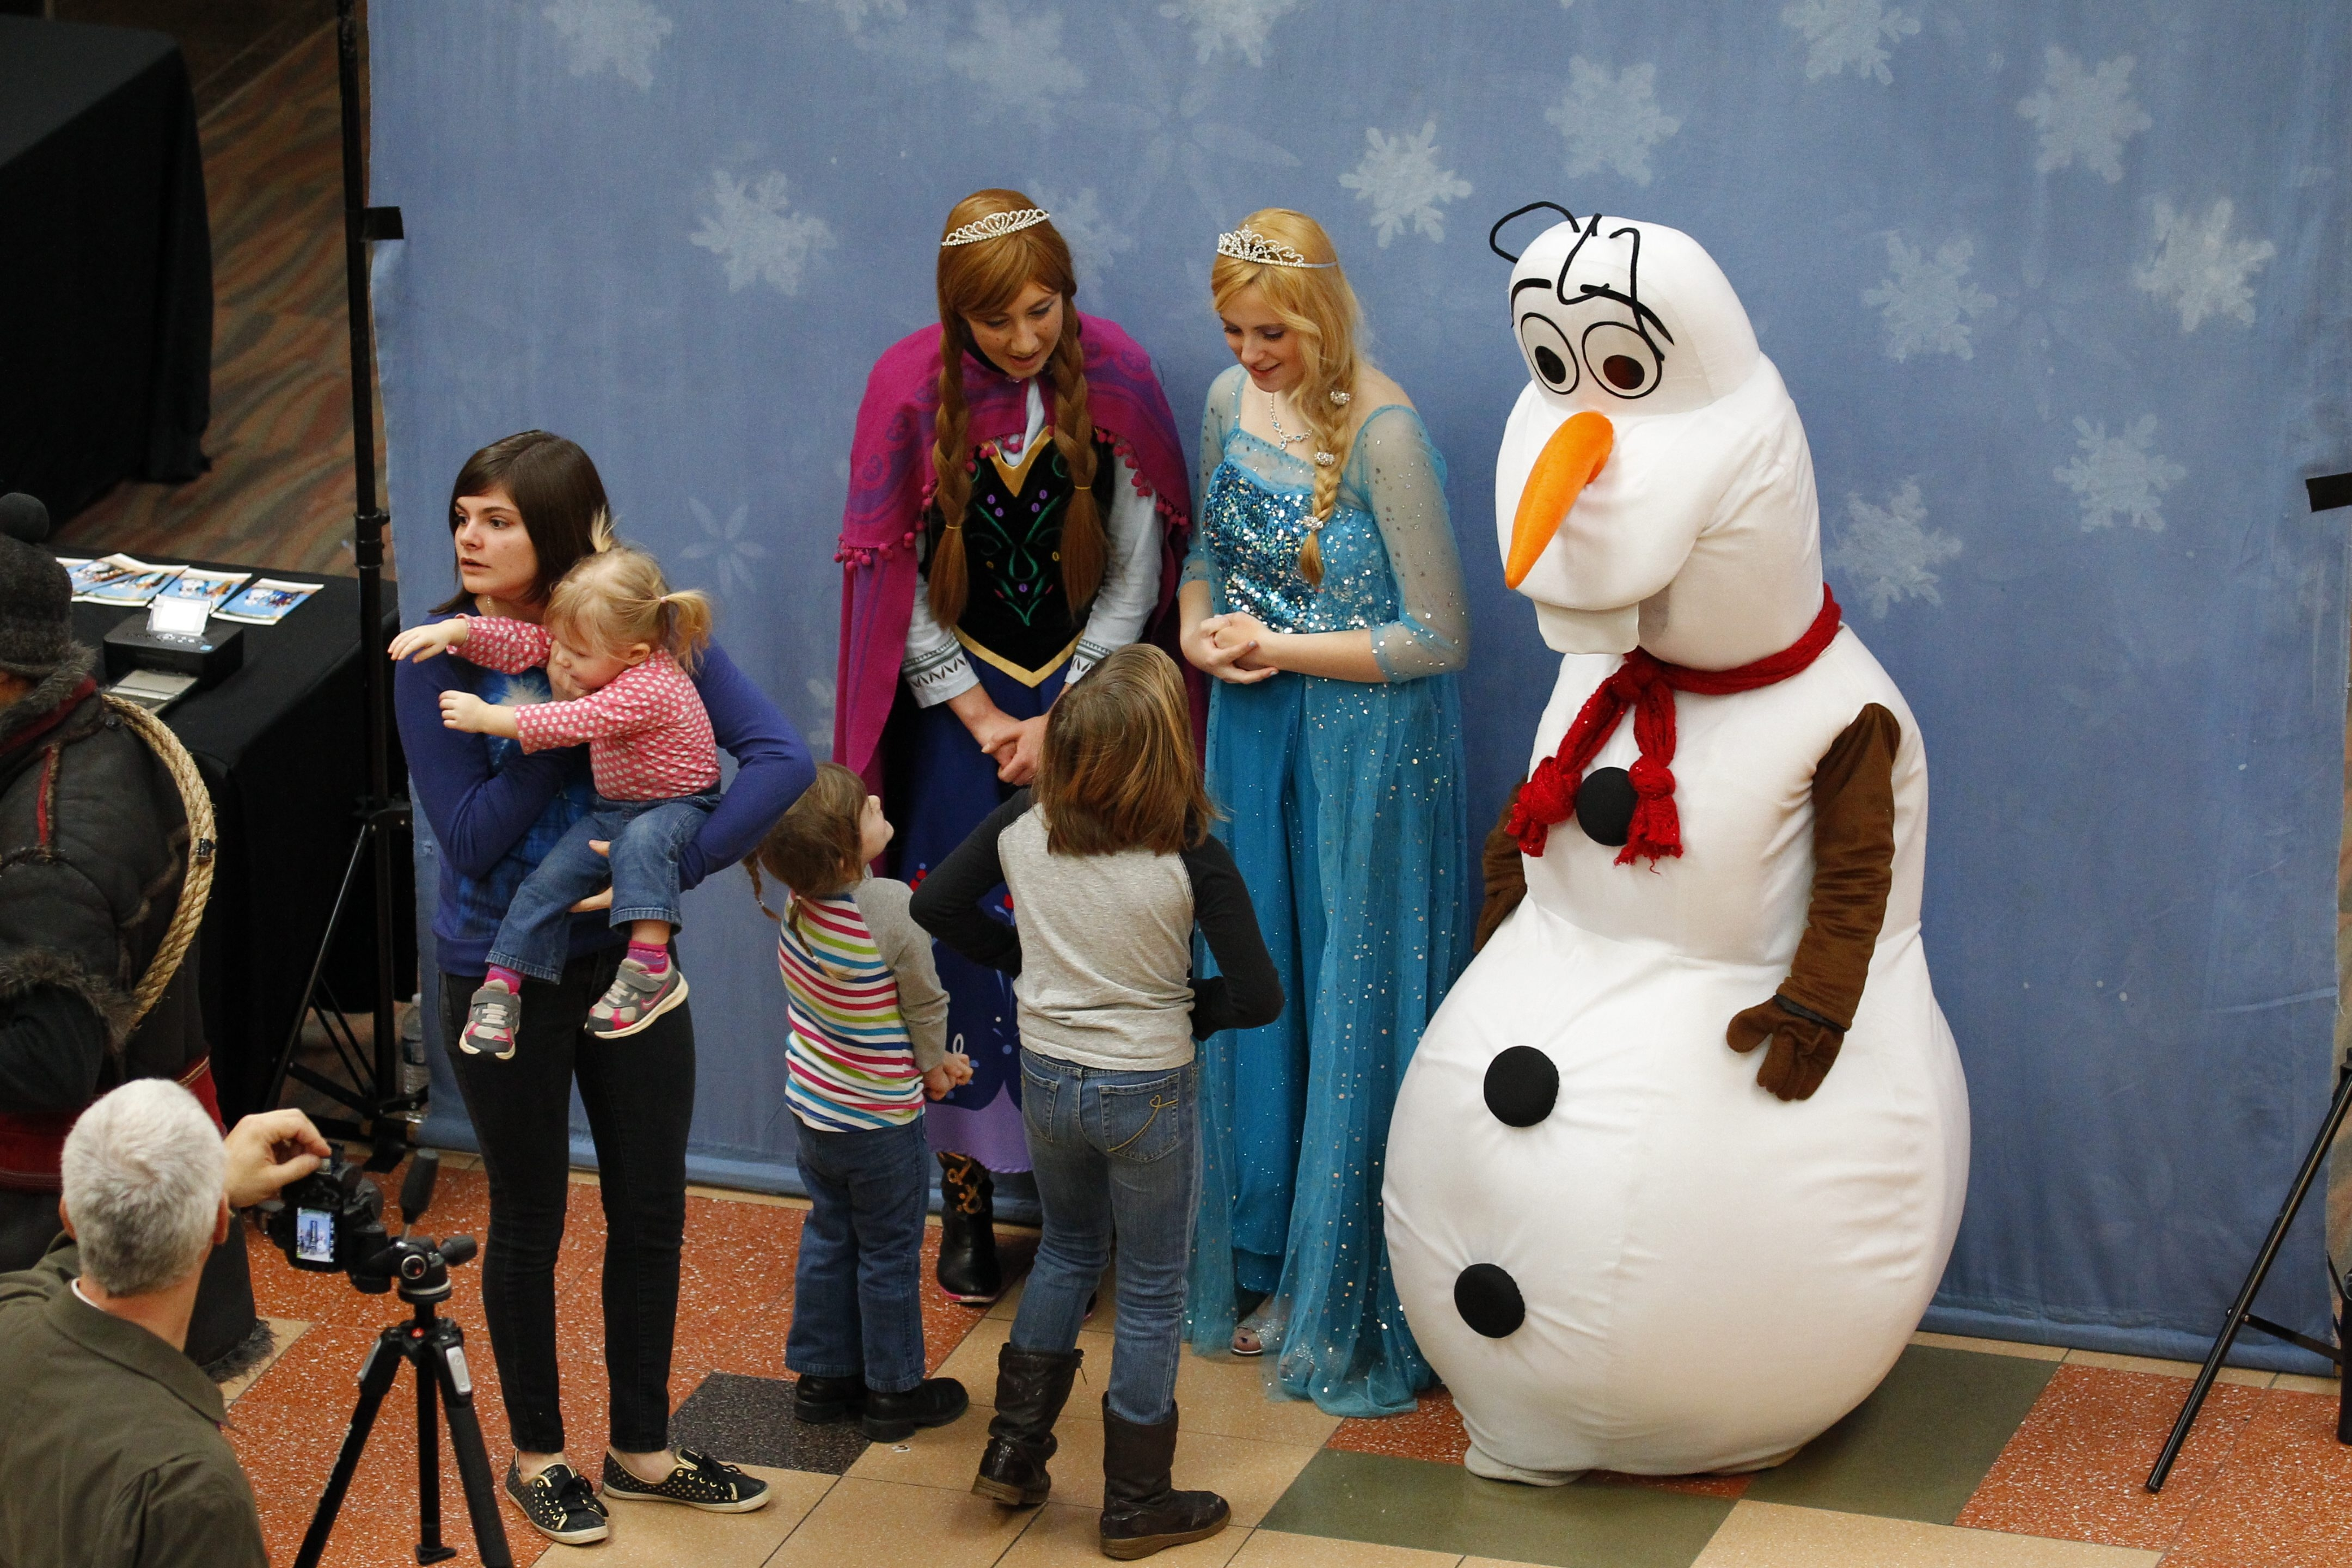 """Top, children greet characters from Disney's hit movie """"Frozen"""" at the Walden Galleria on Sunday. Left, Shane Liszewski and his children Kierra, 6, right, and Kaylynn, 3, left, wait patiently in line with other parents and children at the mall event. Above, Samantha Cruz, of Hamburg, and her niece Ella White, 3, show their excitement."""